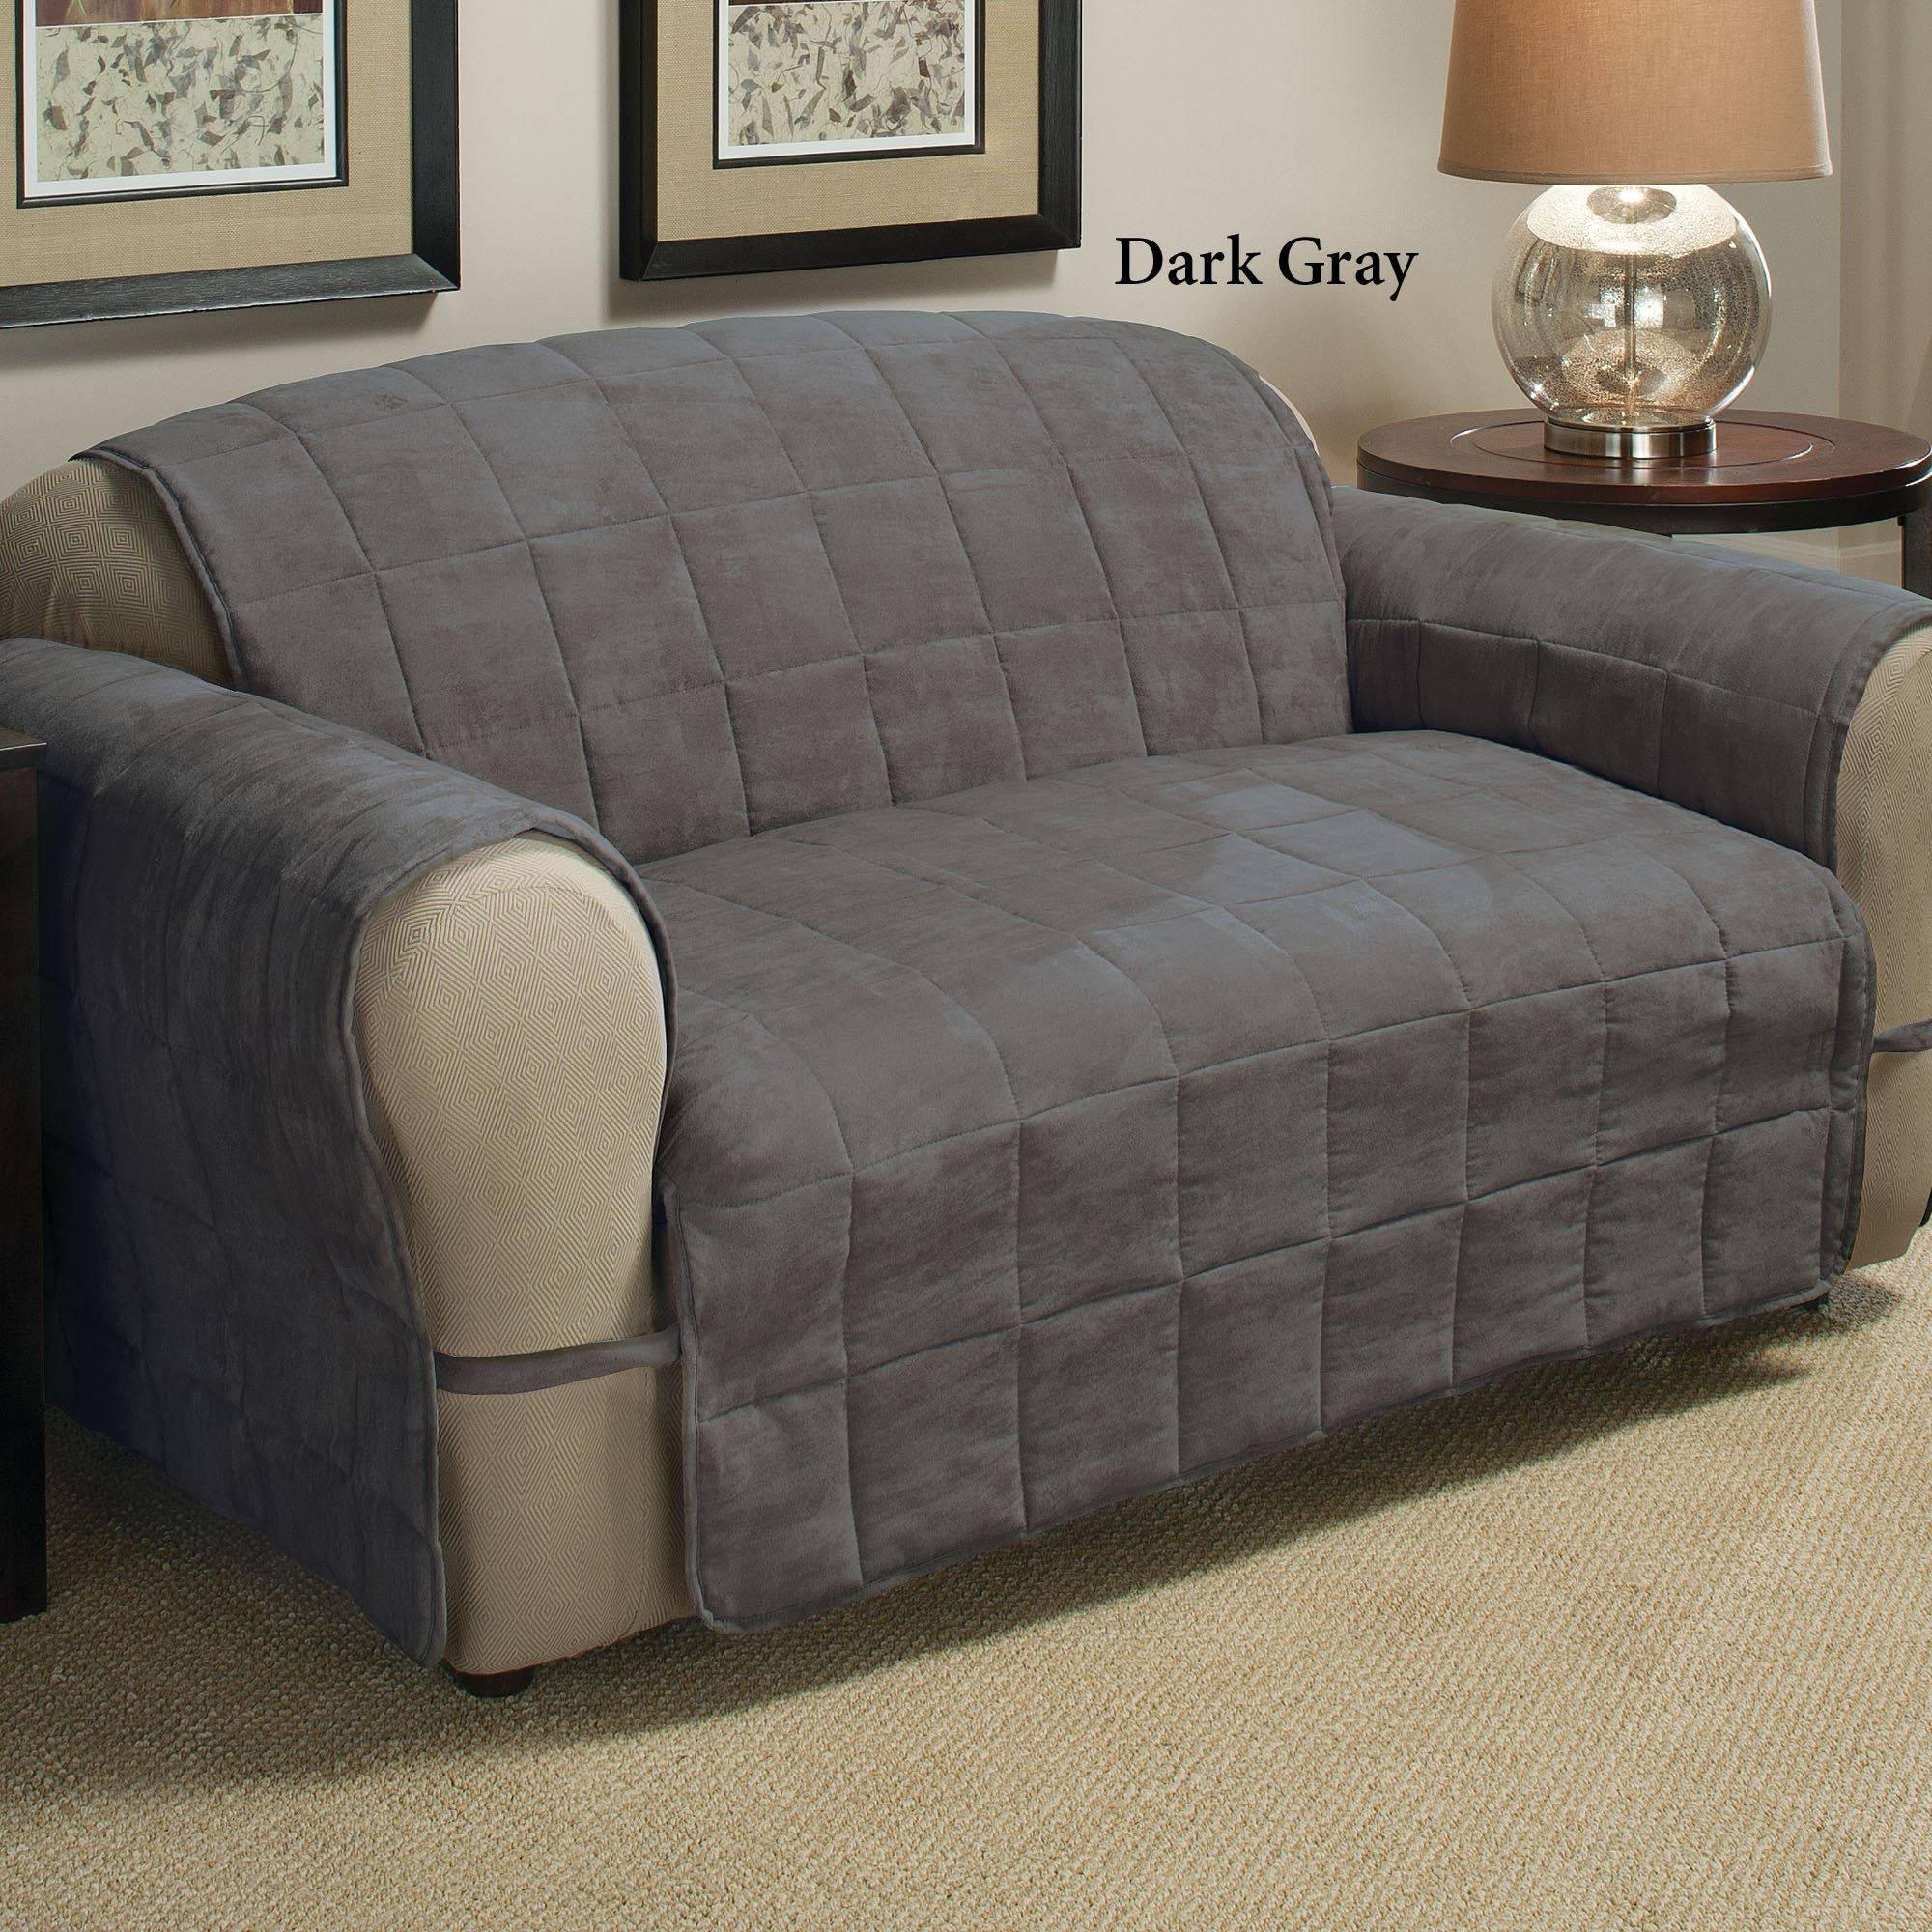 Pet Covers For Sofas And Chairs Tags : 53 Impressive Pet Cover For For Covers For Sofas (View 21 of 30)